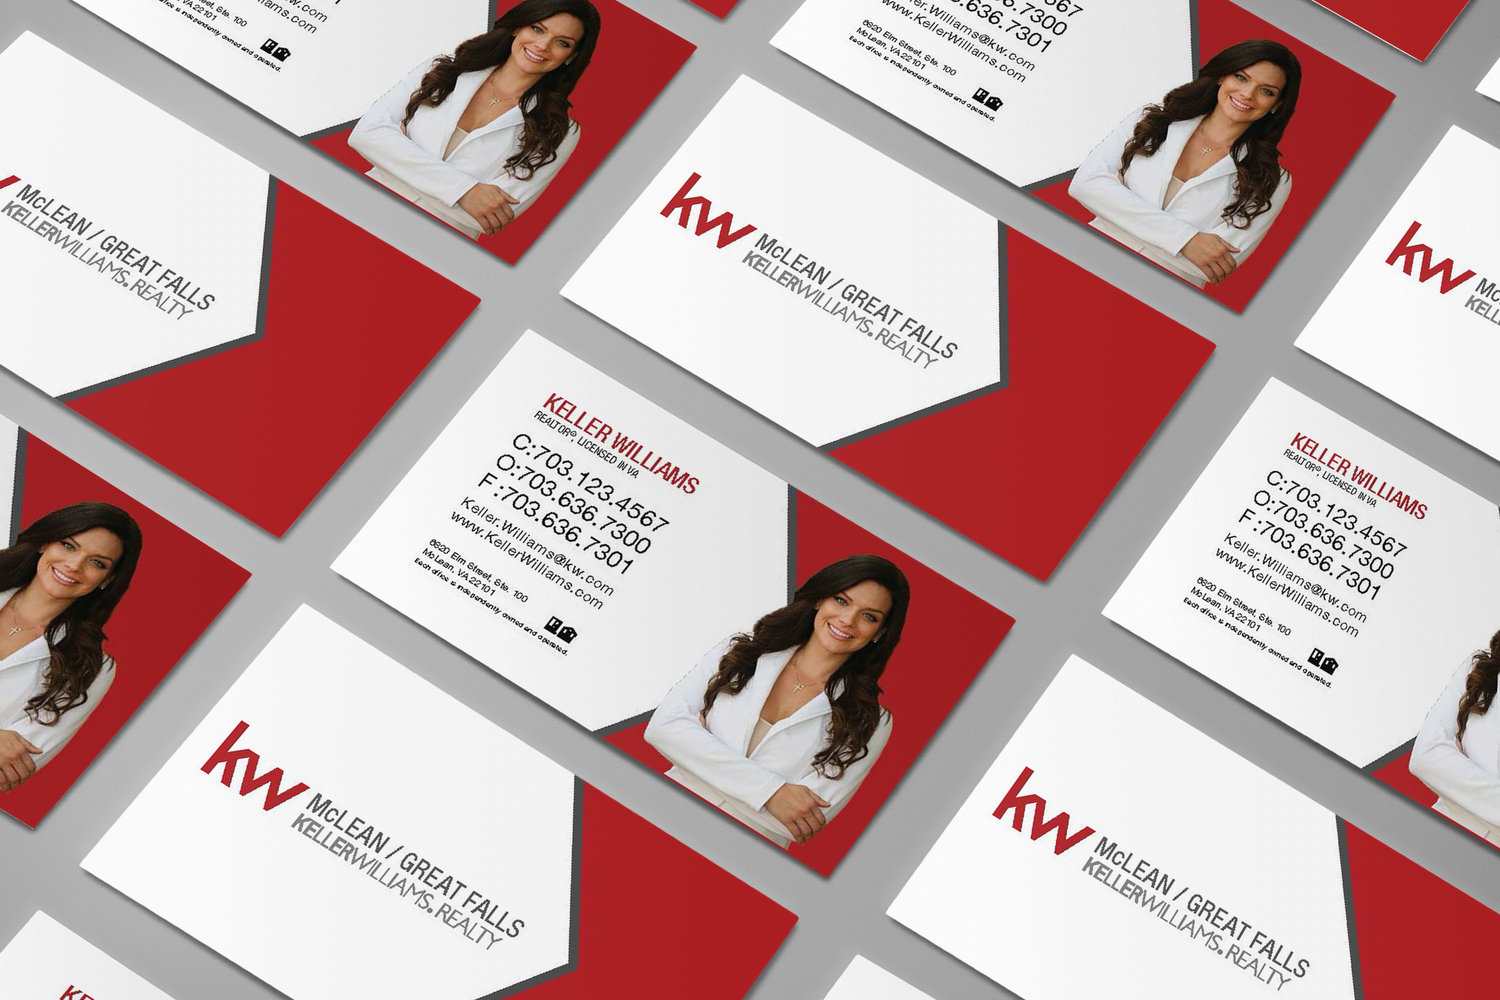 Keller williams realty mclean reach business card mockup for adg magicingreecefo Gallery